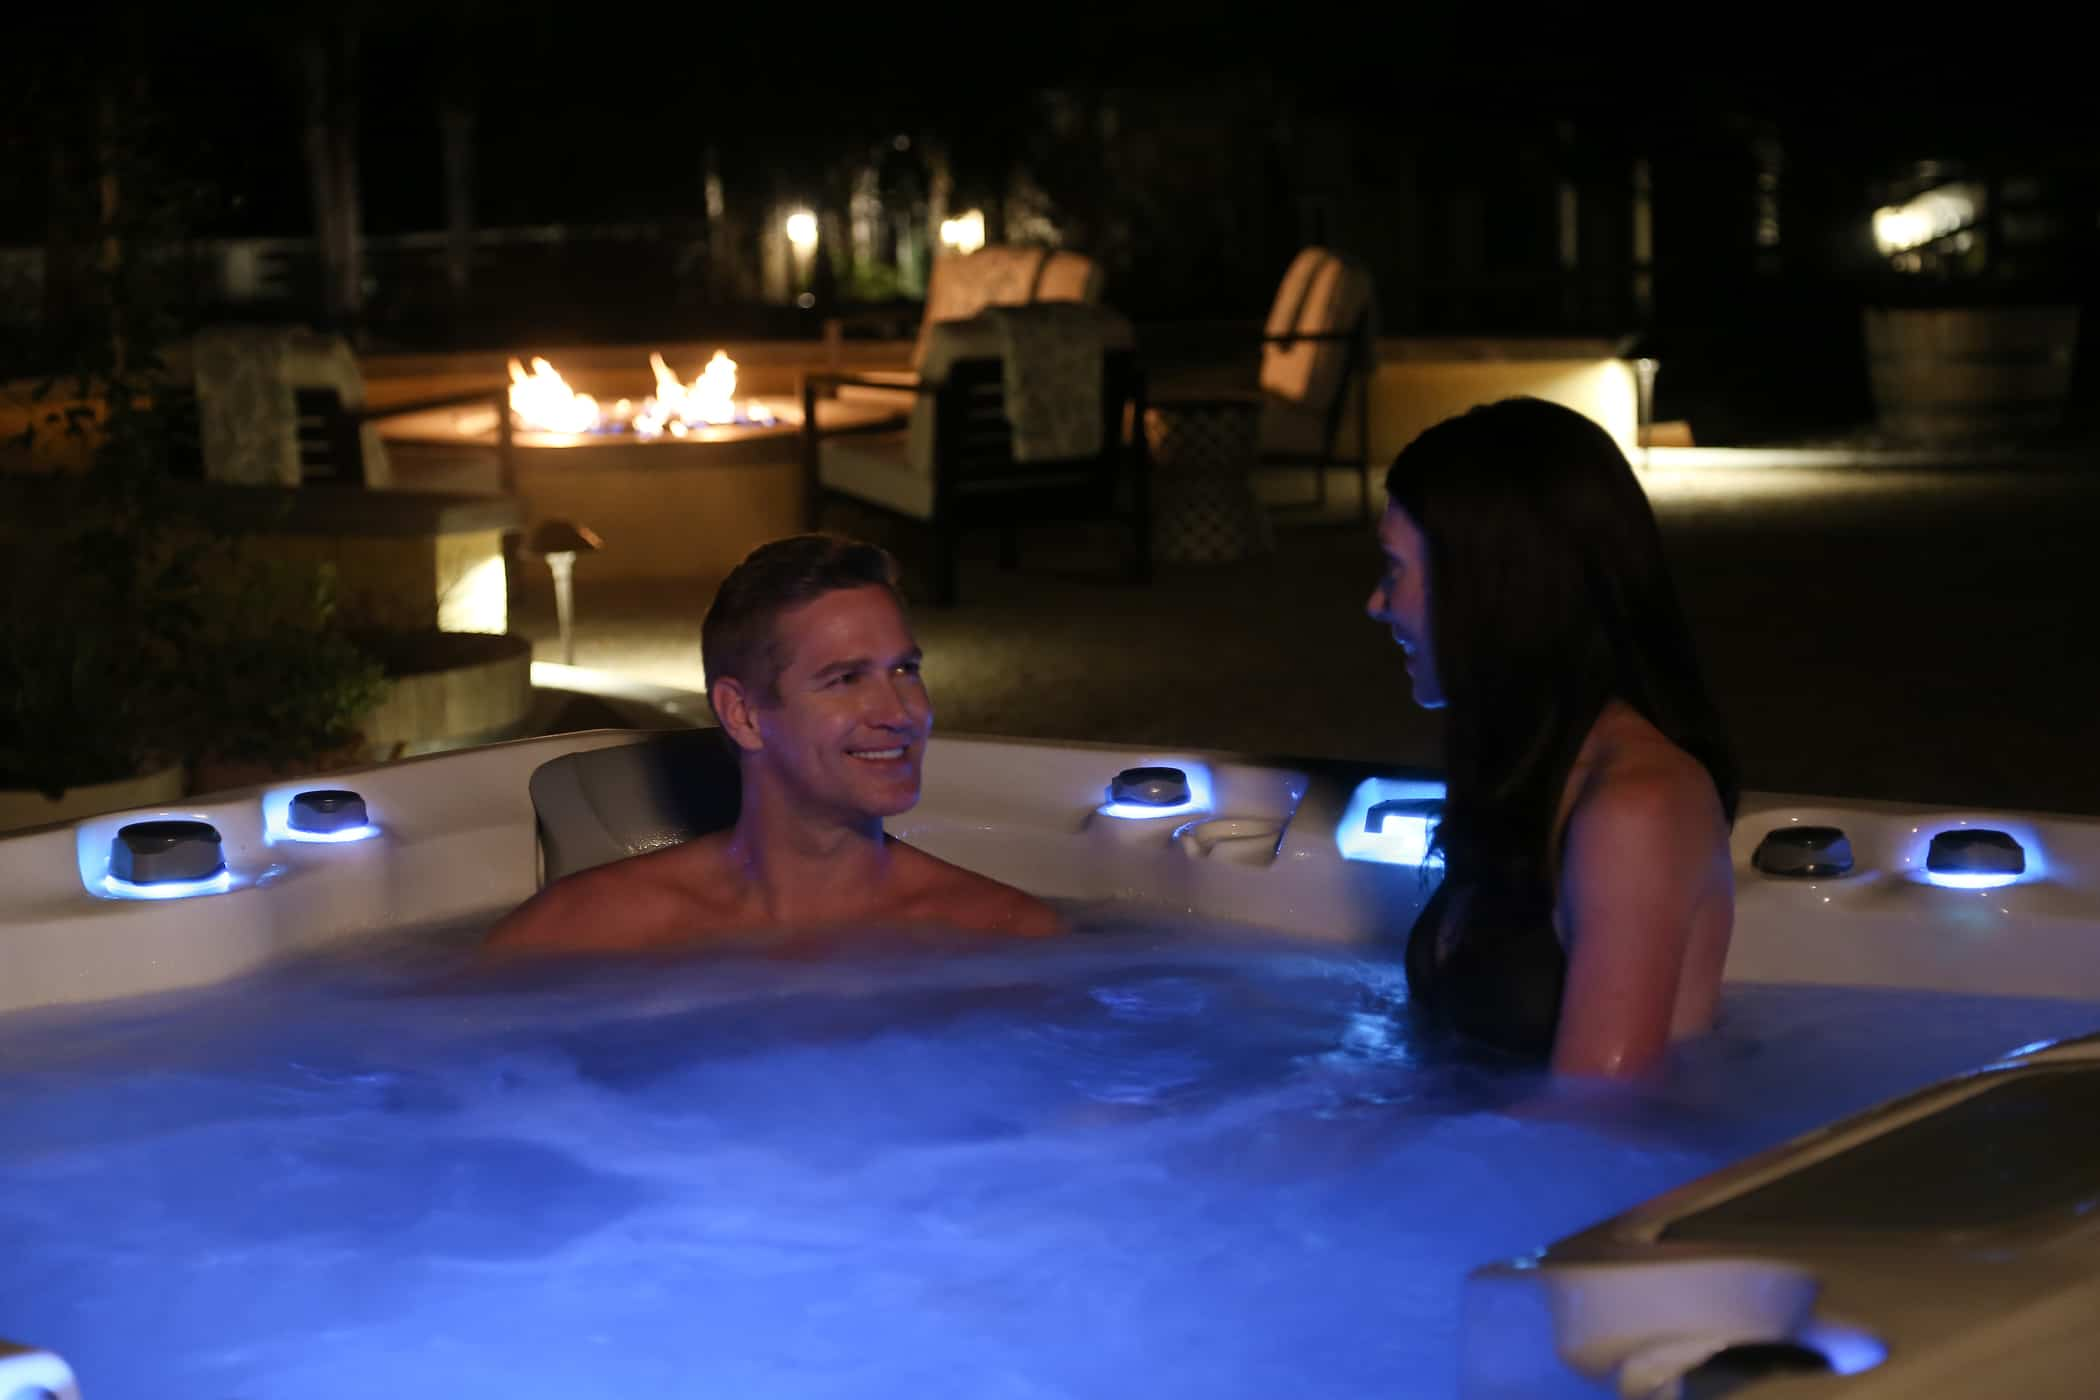 Man and woman soaking in a hot tub at night.